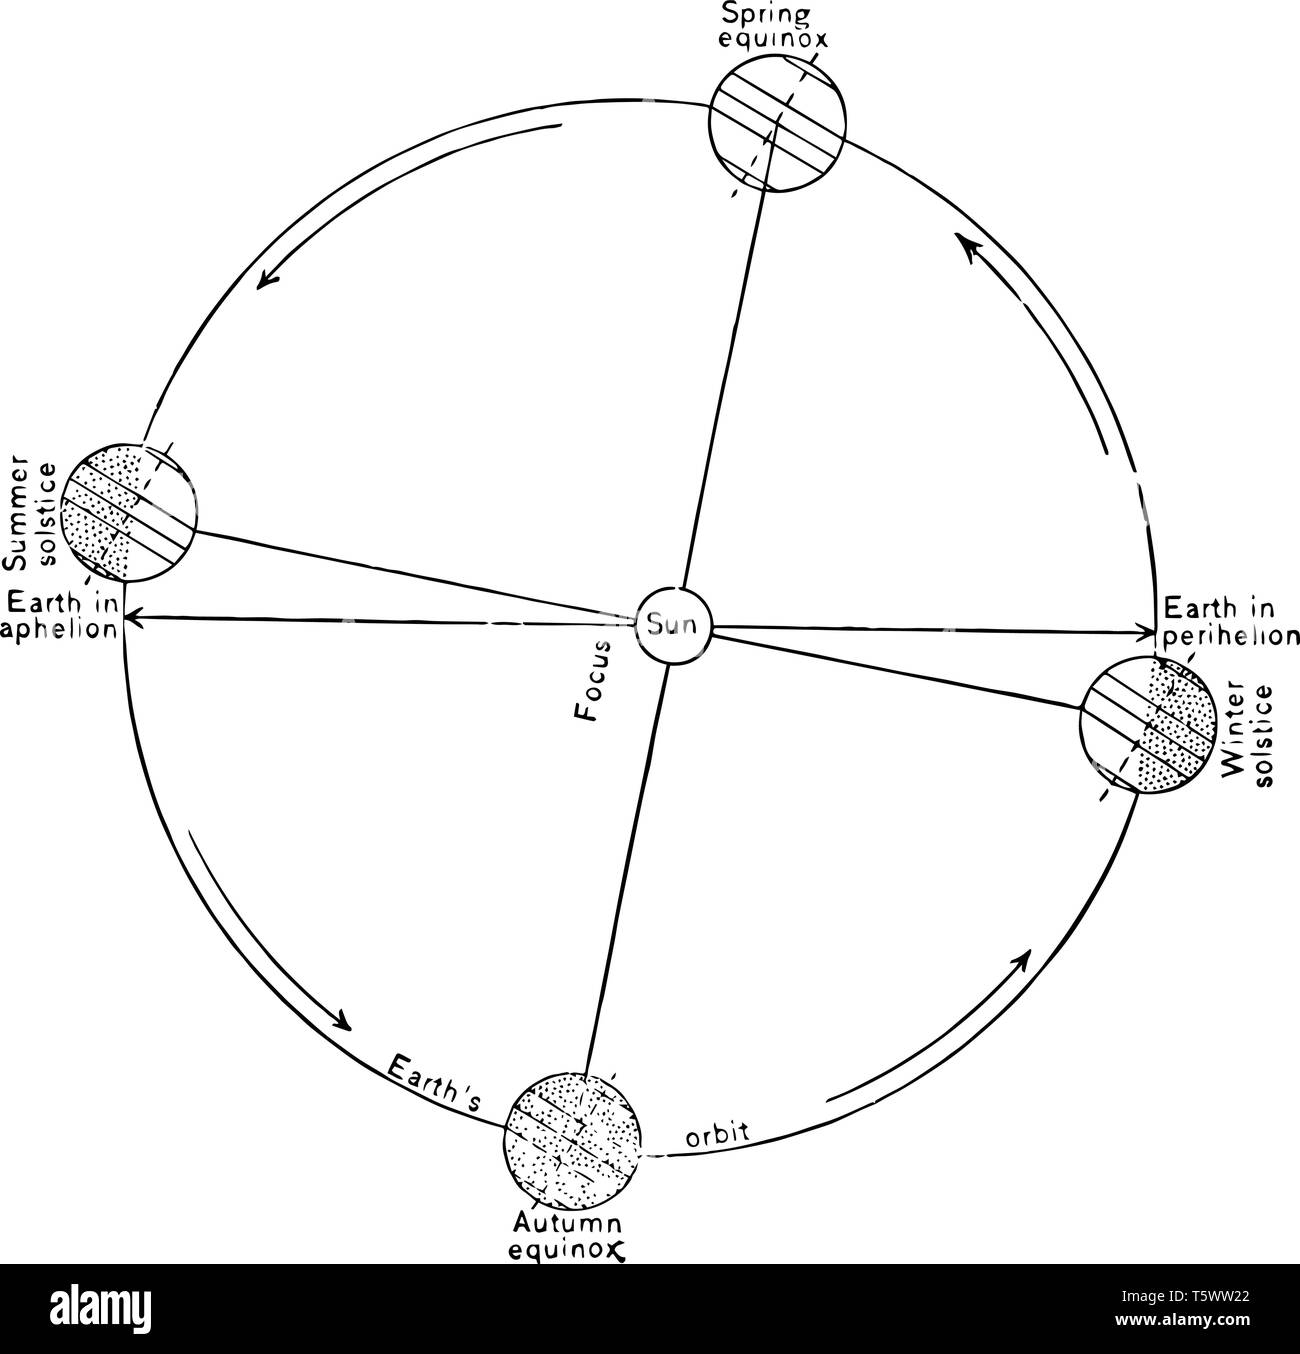 hight resolution of relative positions of the earth and the sun during the spring equinox the summer solstice the autumn equinox and the winter solstic vintage line drawi